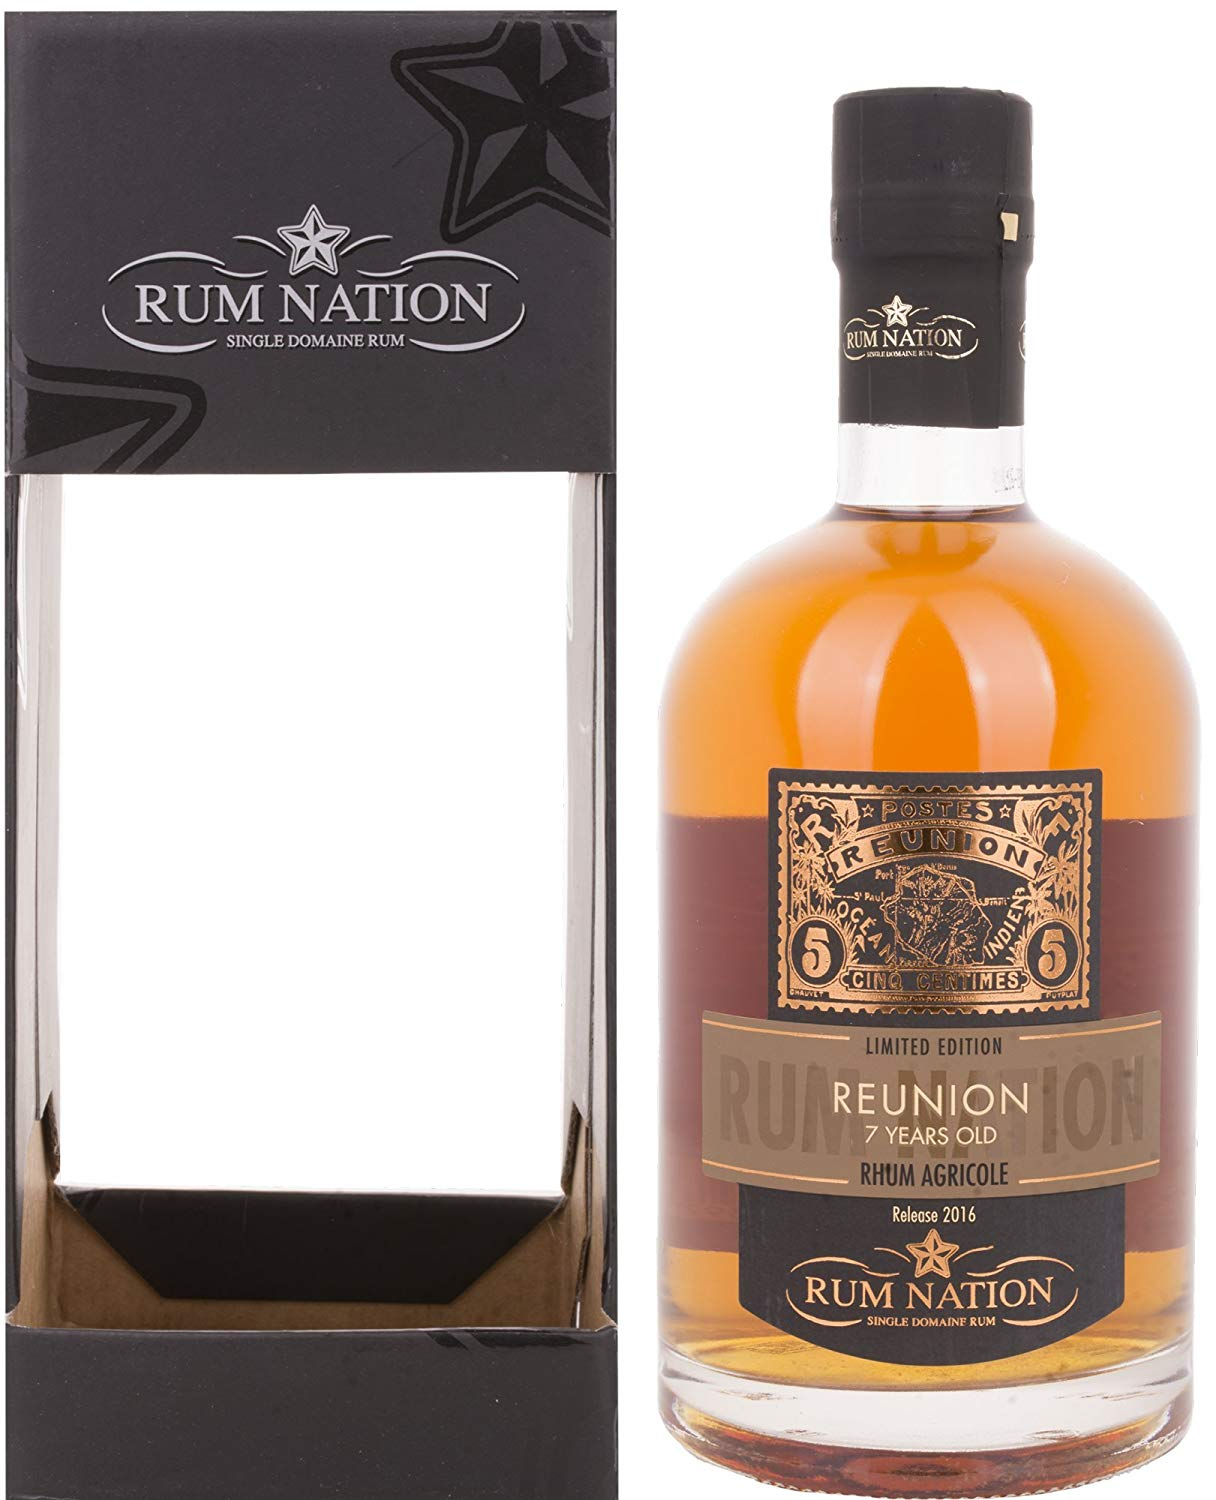 Confezione regalo Reunion 7yo Rum Nation